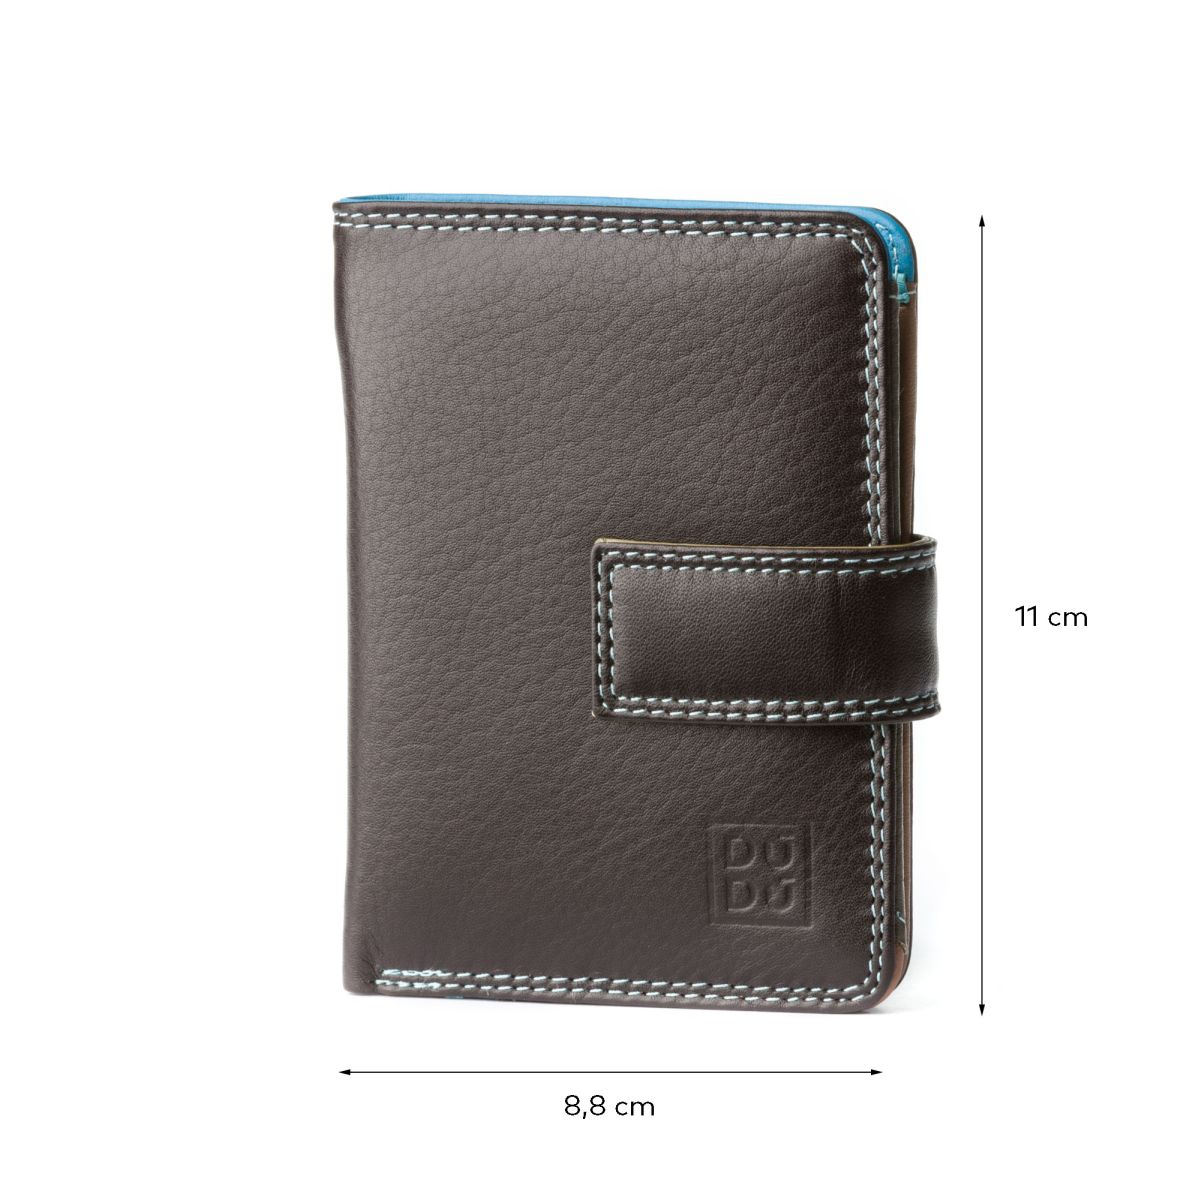 DuDu Small Womans Wallet Trifold Wallet - Dark Brown